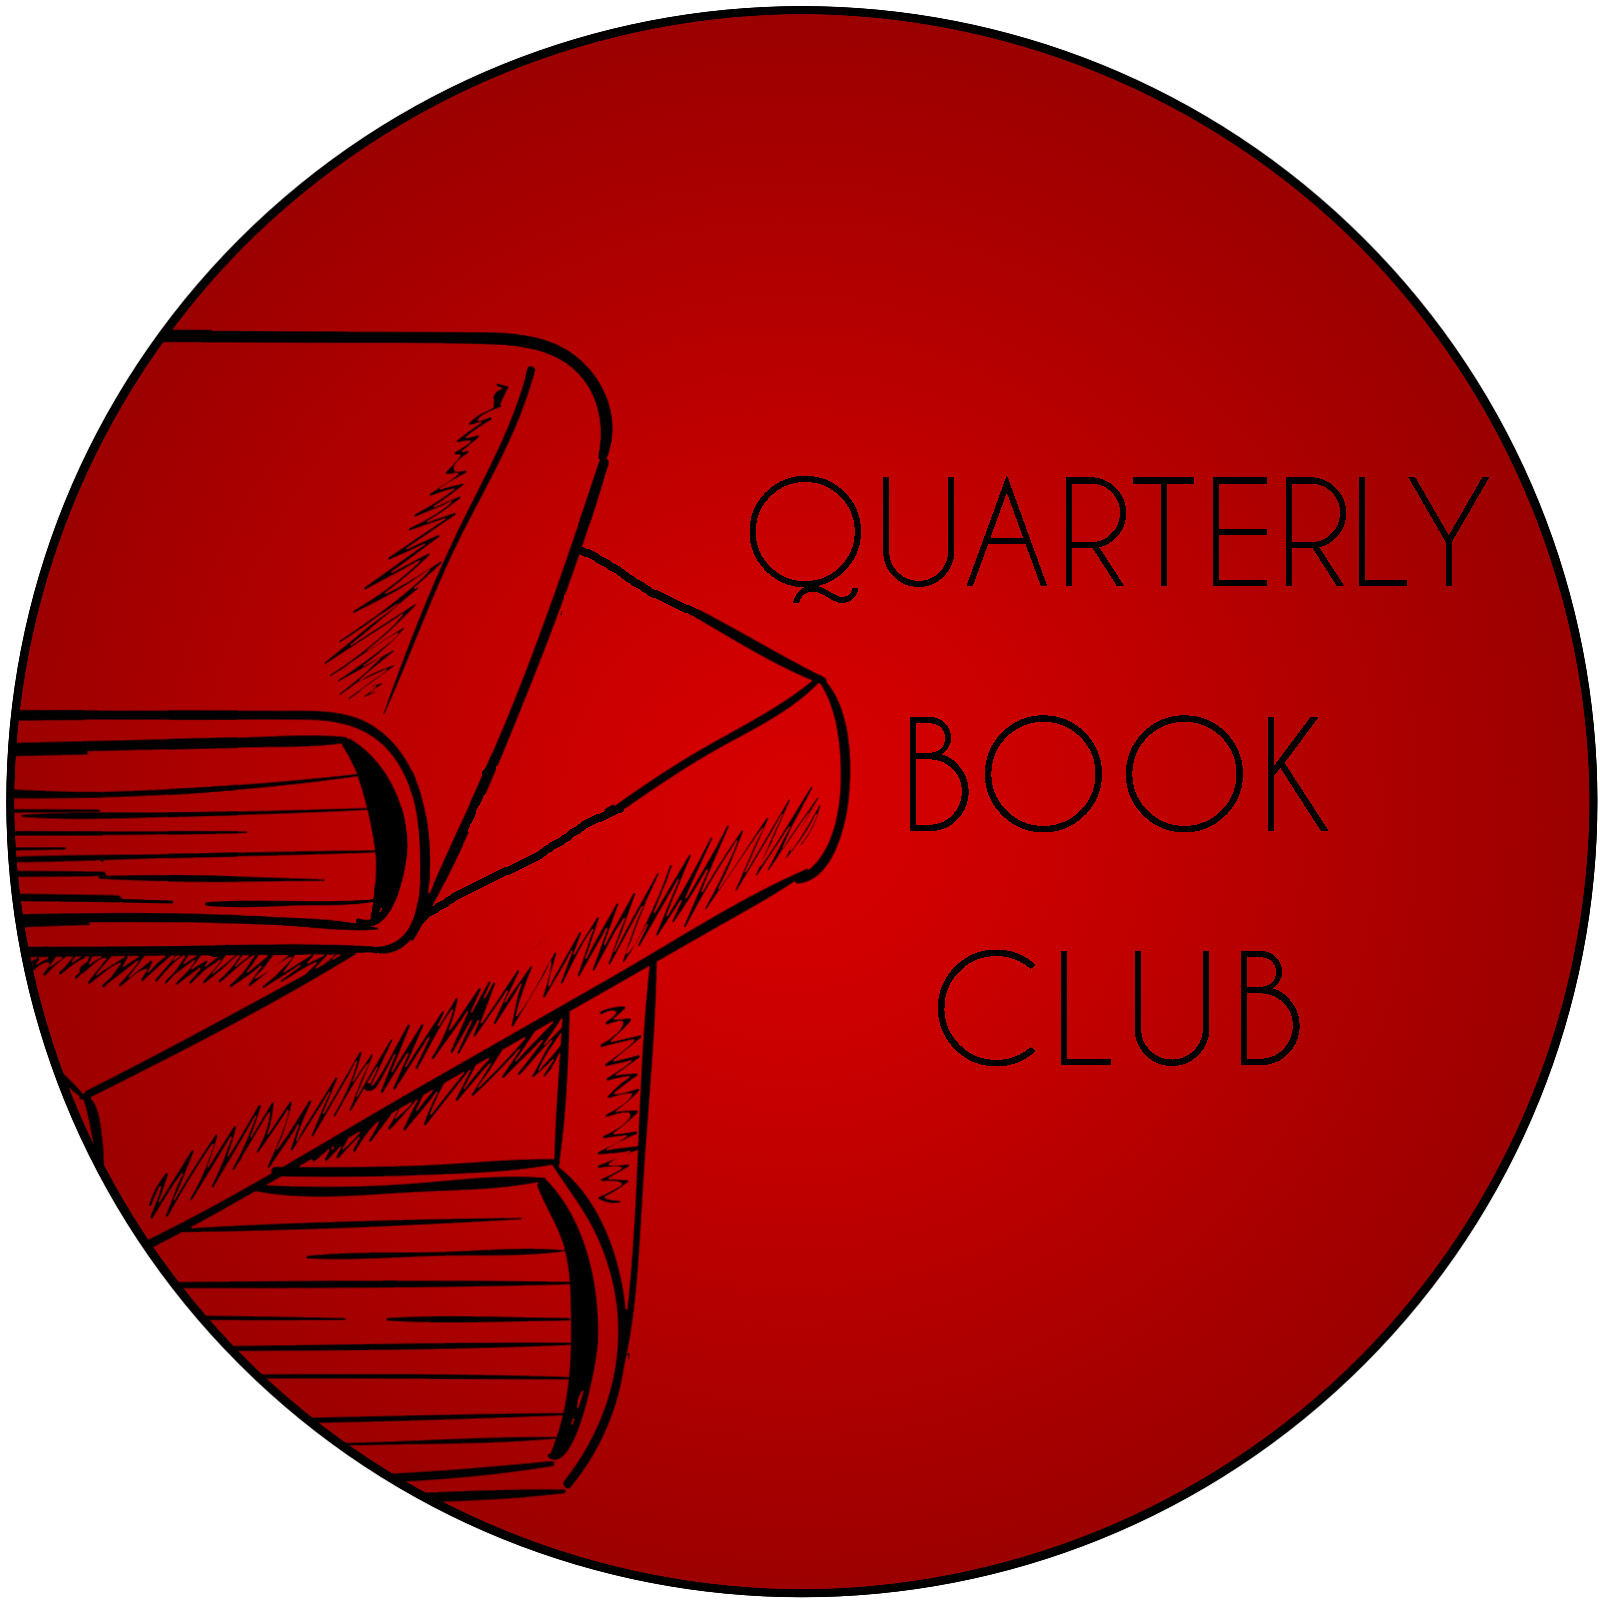 Quarterly Book Club - Why quarterly? Because you're busy and books are long! Samantha Stark hosts this video book club, our first regular filmed series! You can participate on social media and through an online portal.